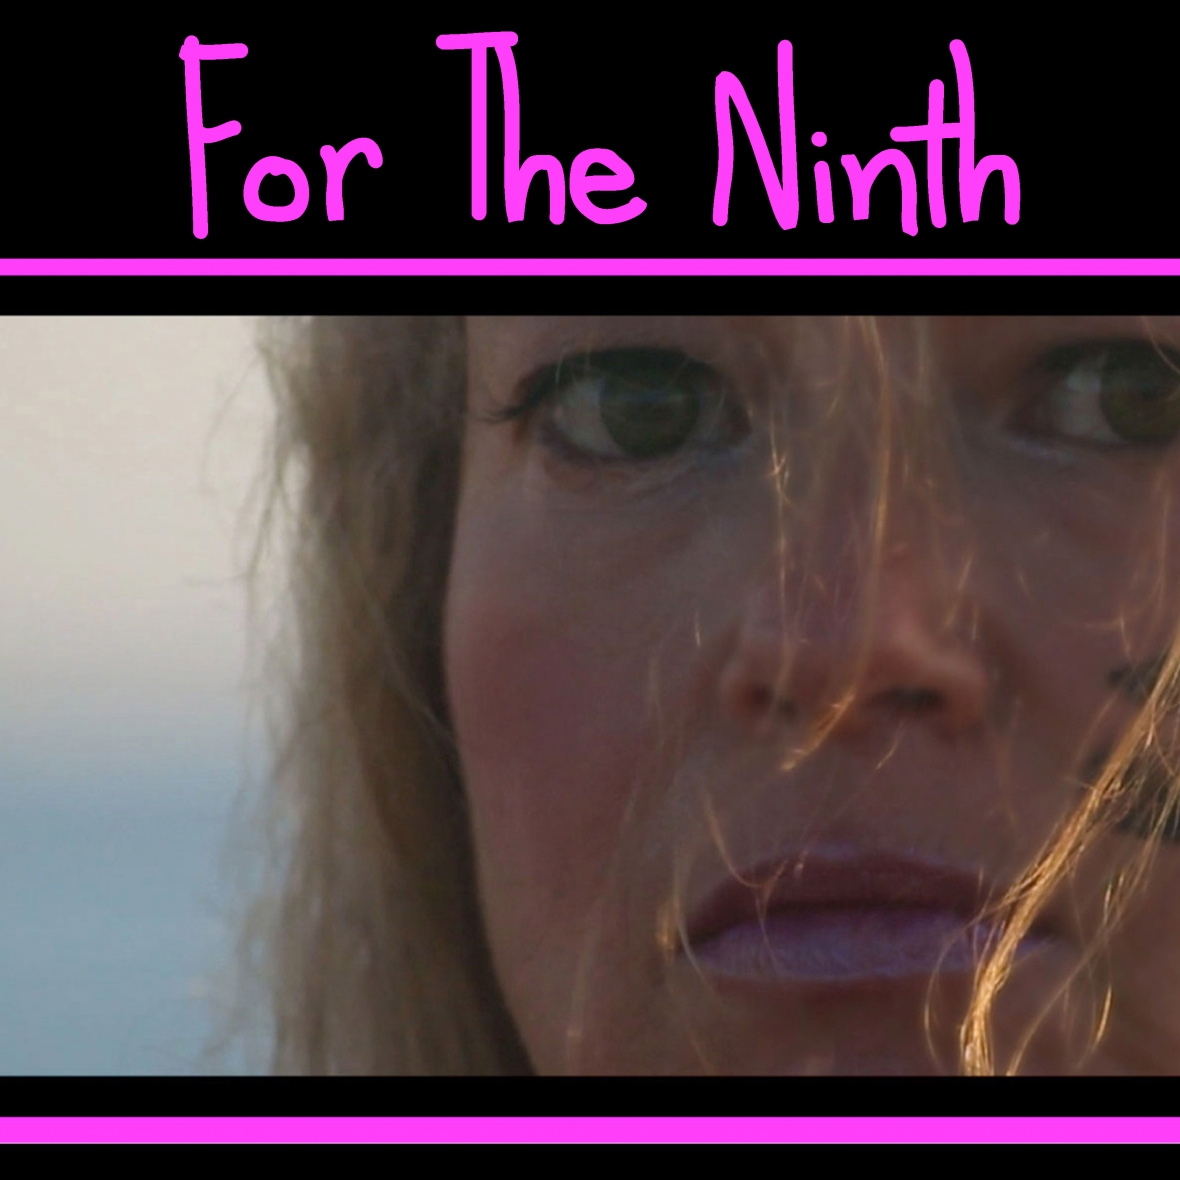 Album Artwork For The Ninth .jpg copyright Cali Lili all rights reserved